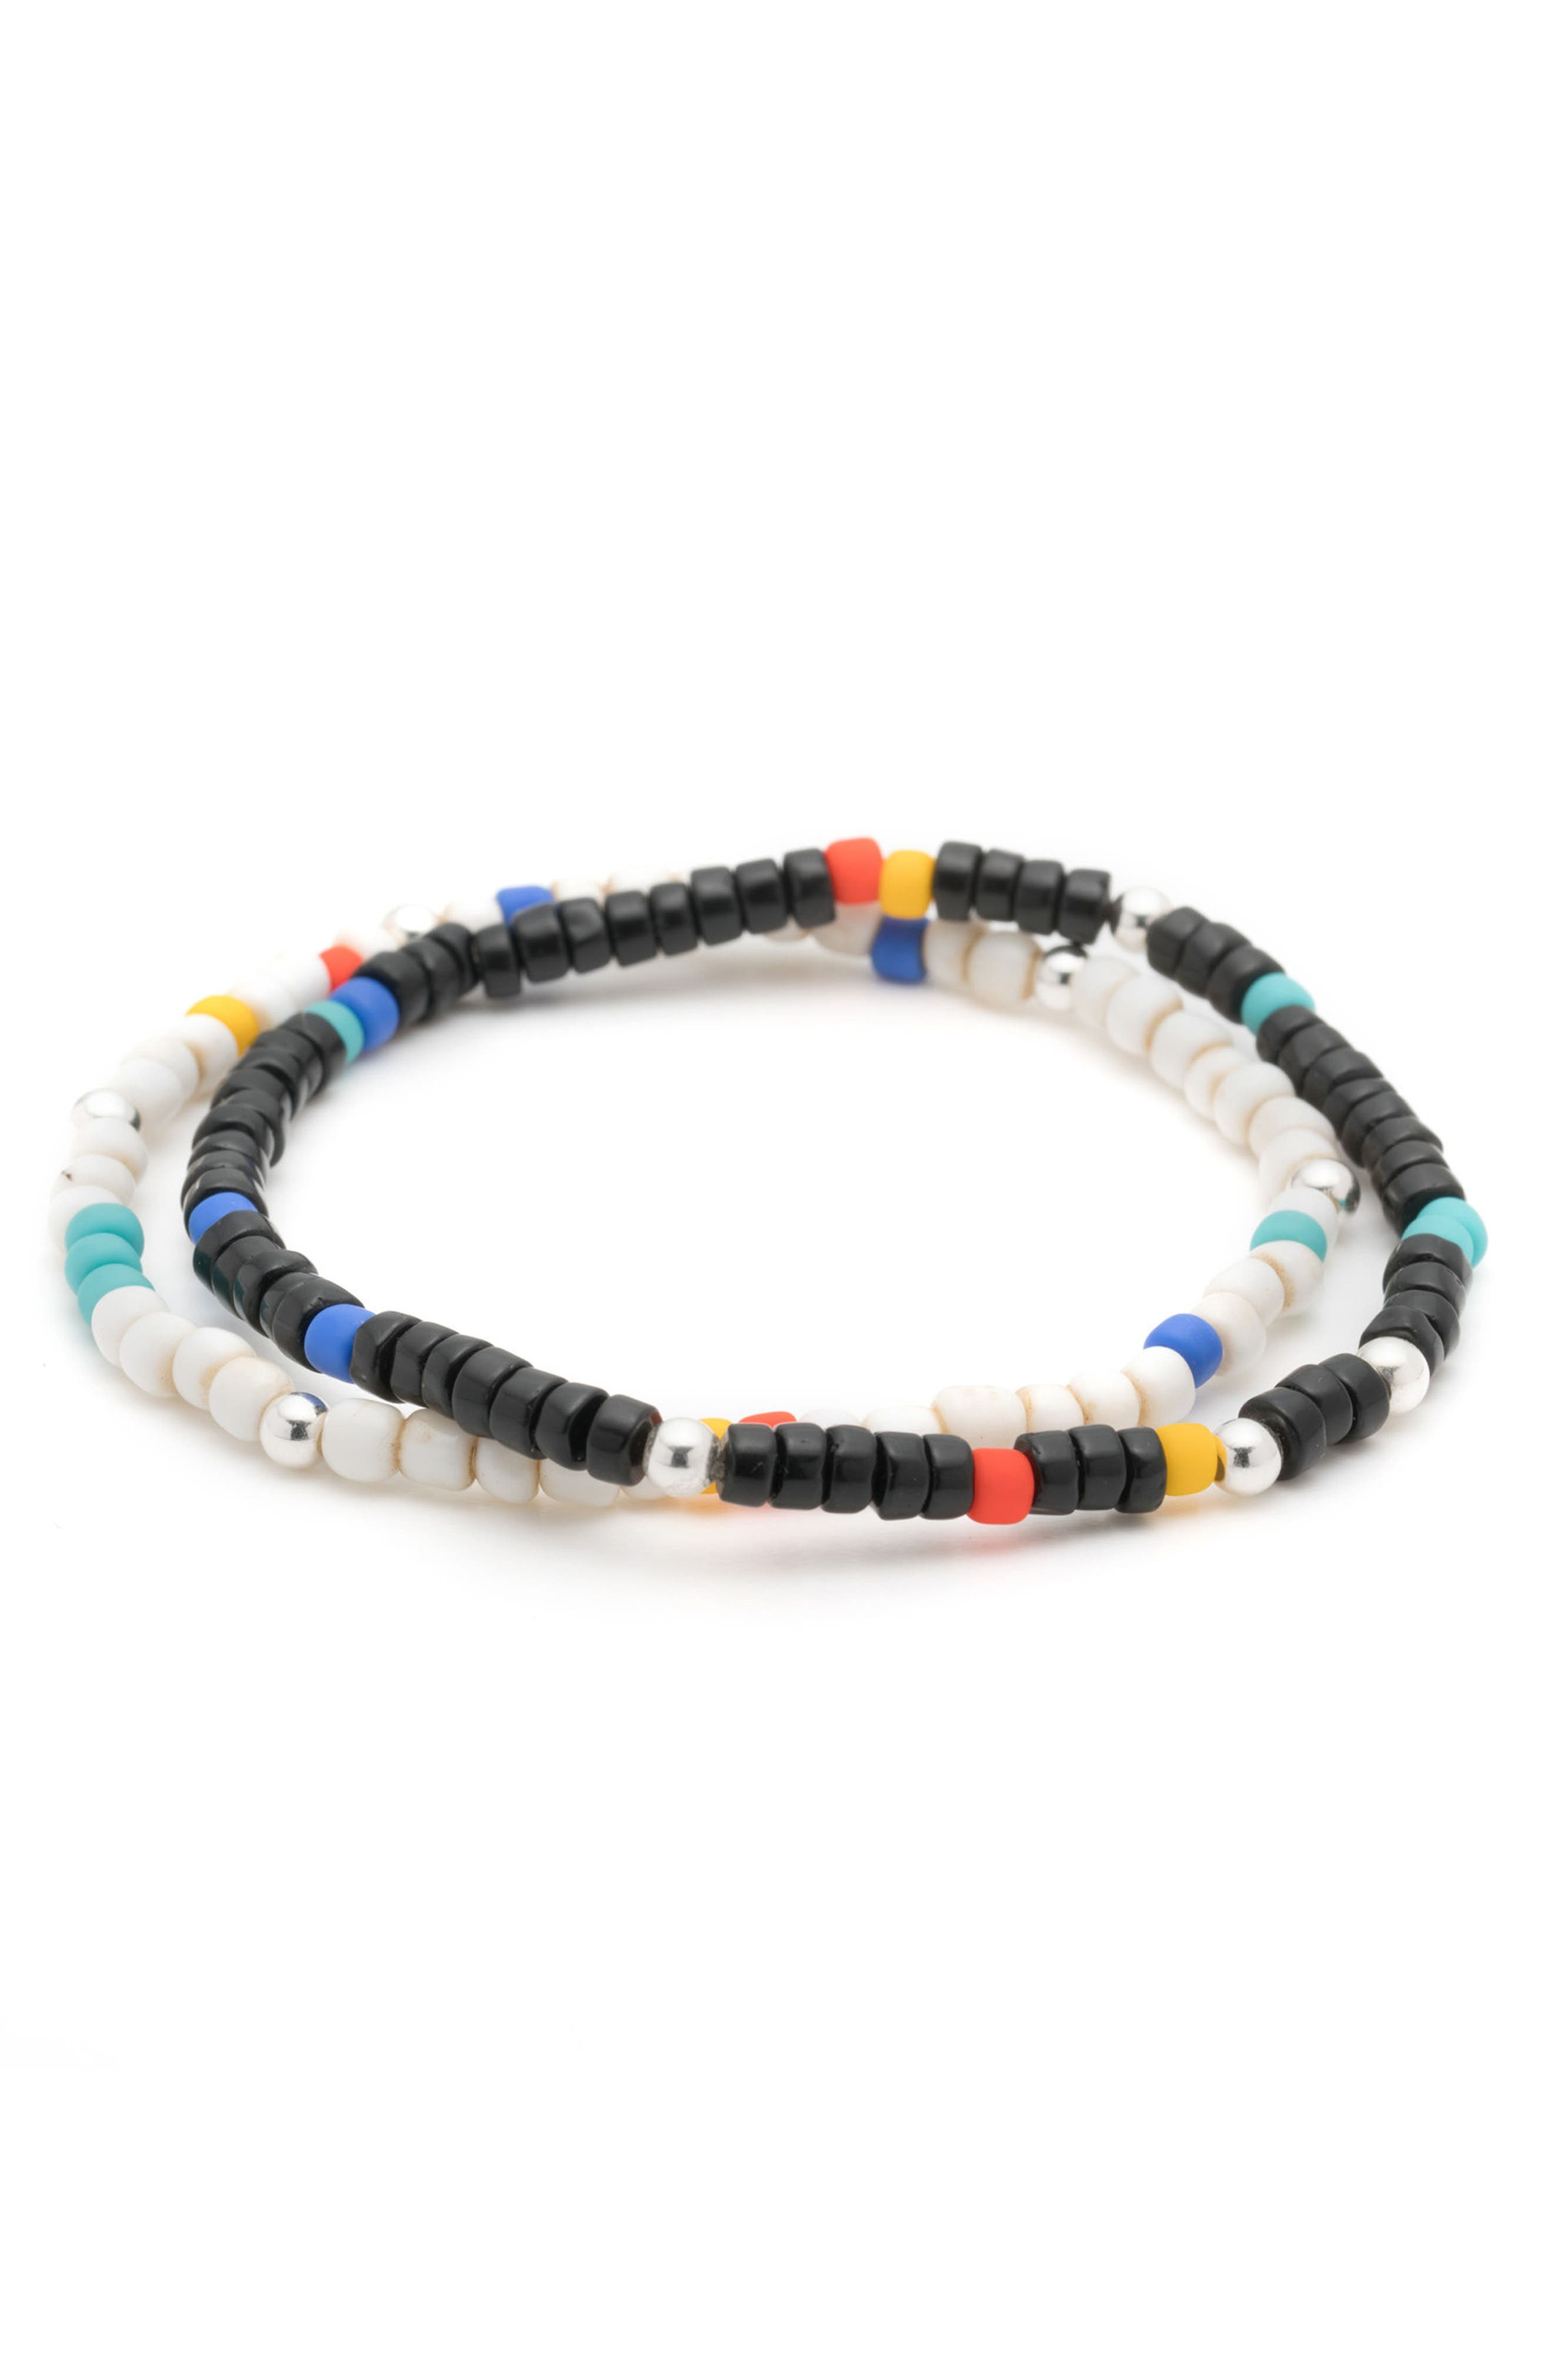 Essaouira 2-Pack Bracelets,                             Main thumbnail 1, color,                             Black/ White/ Multi